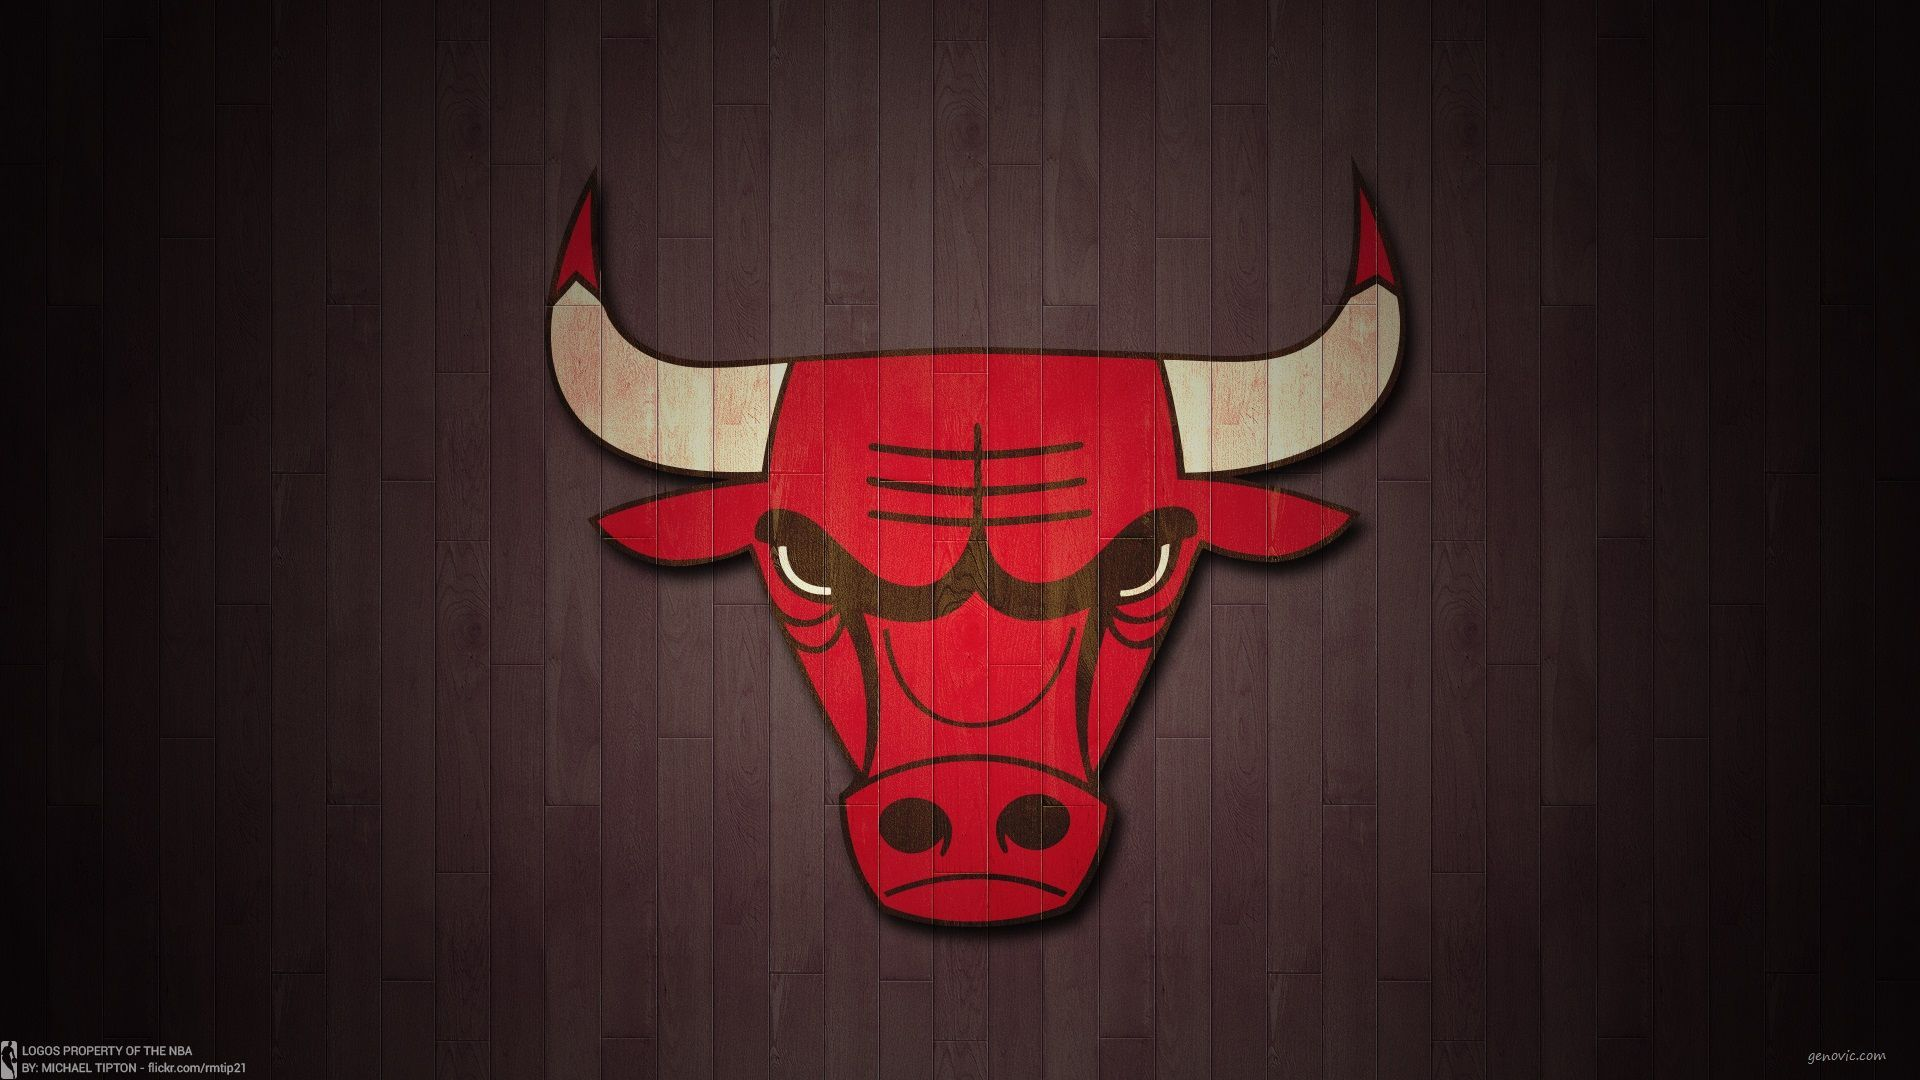 Chicago Bulls iPad Wallpaper And Background Images Wallpapers